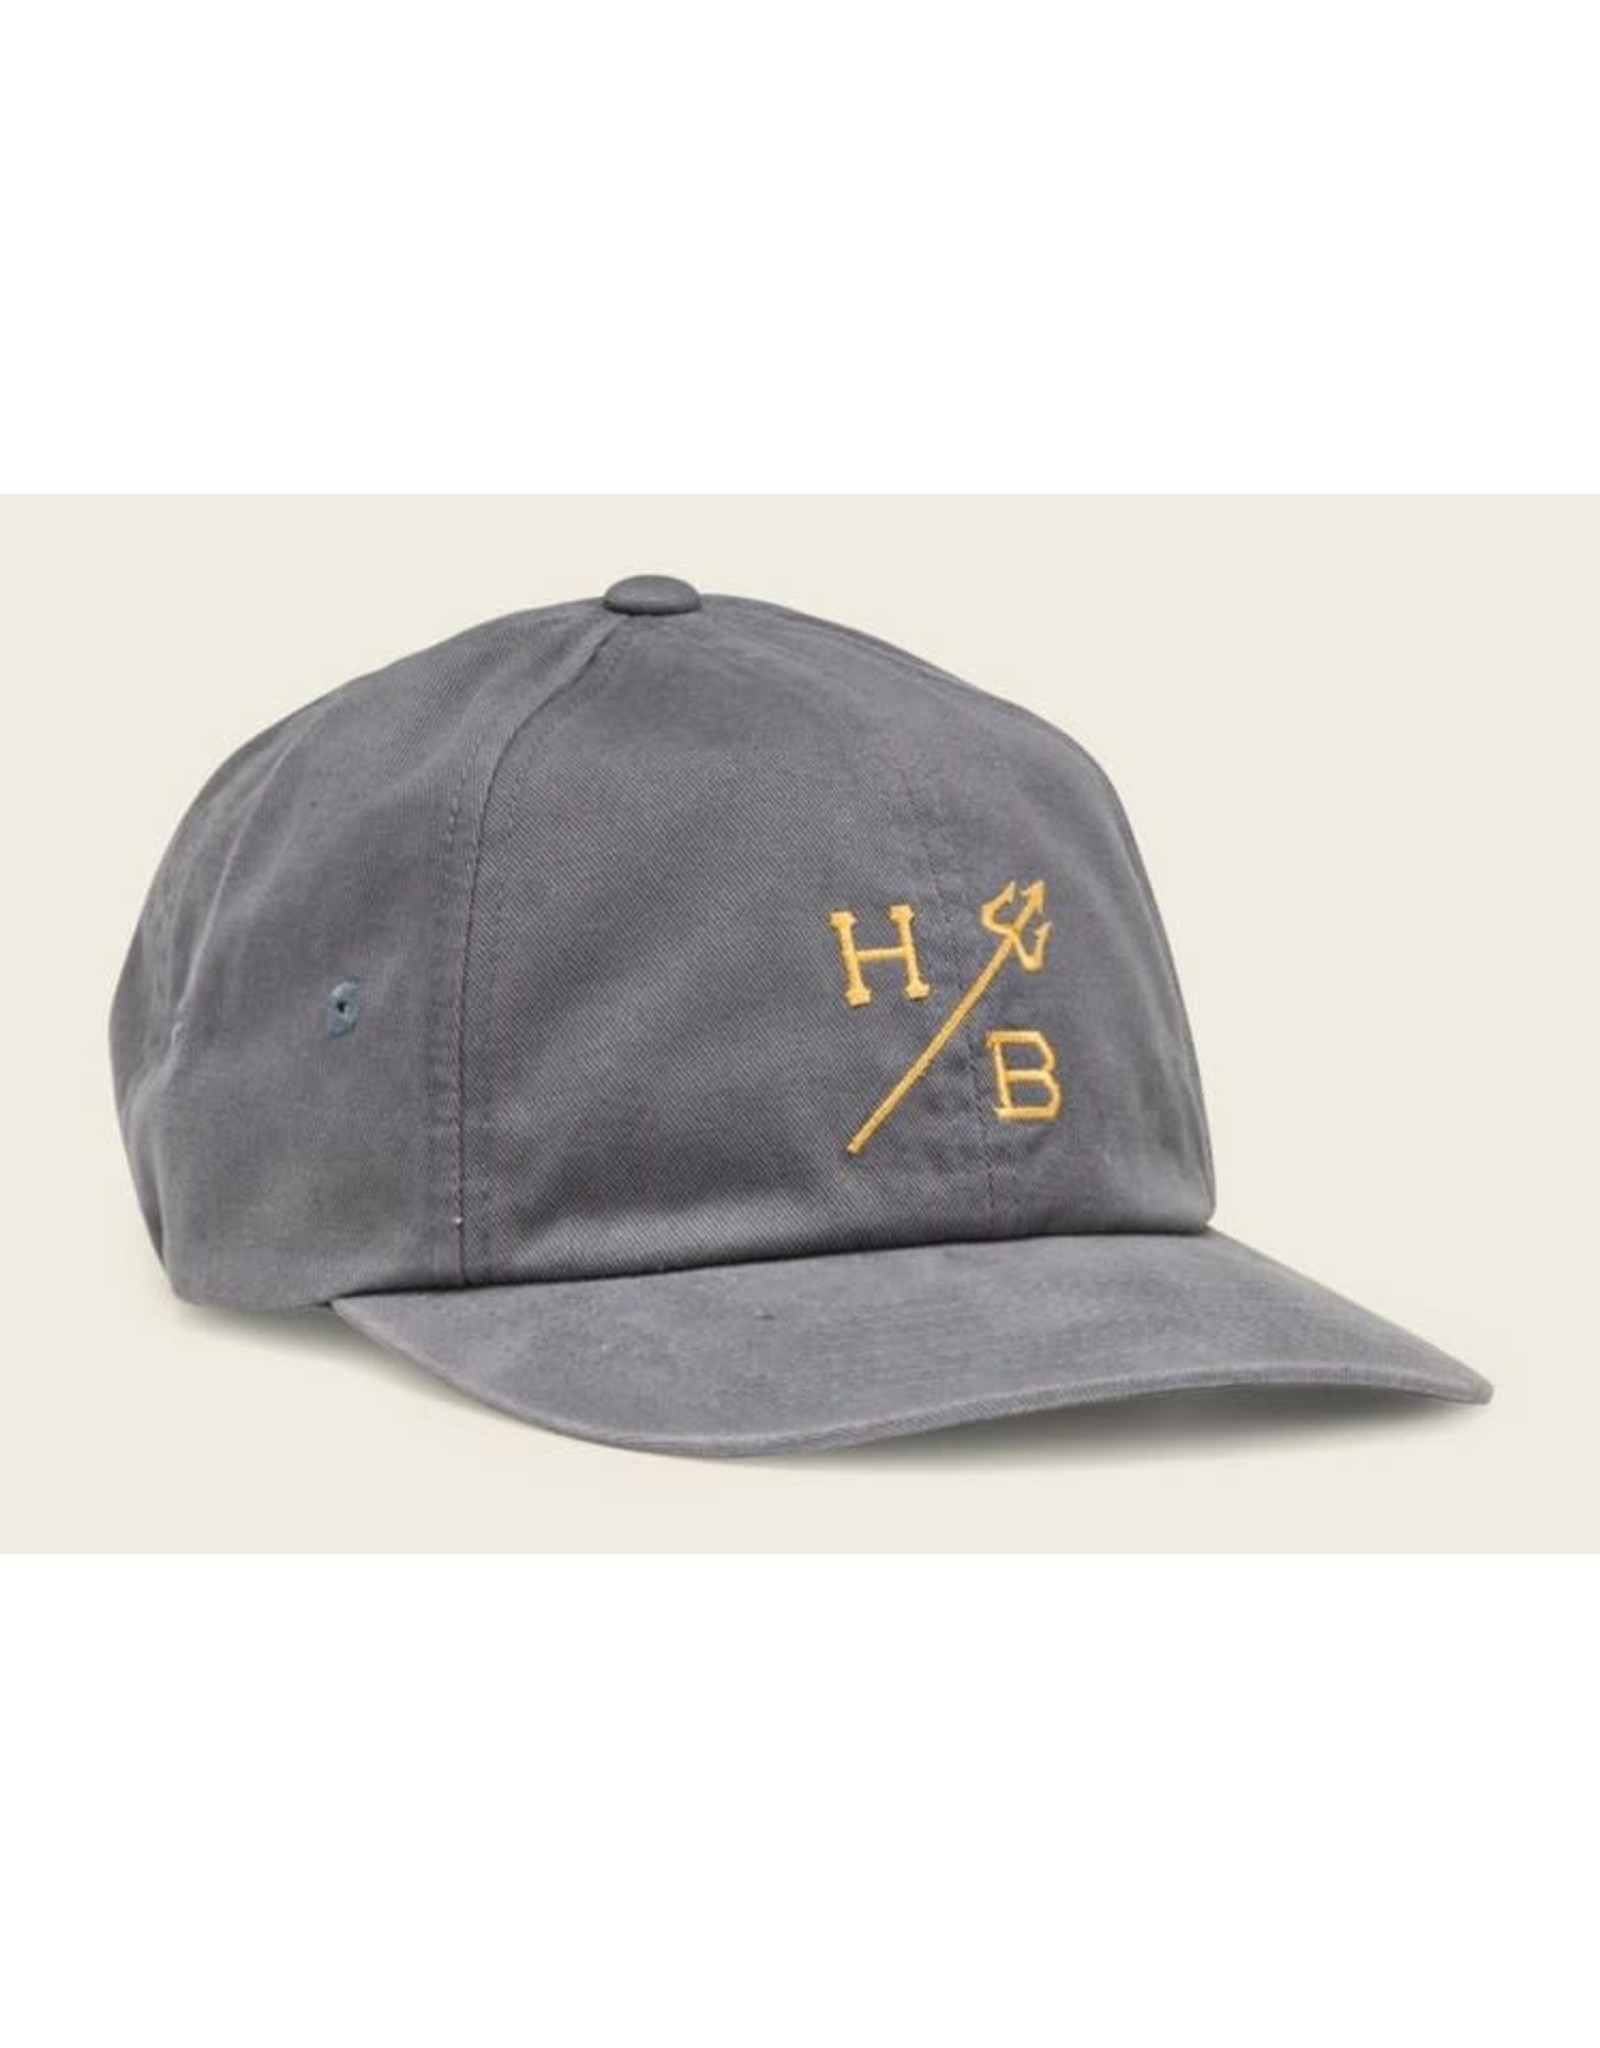 Howler Bros HB Trident Snapback Hat- Graphite